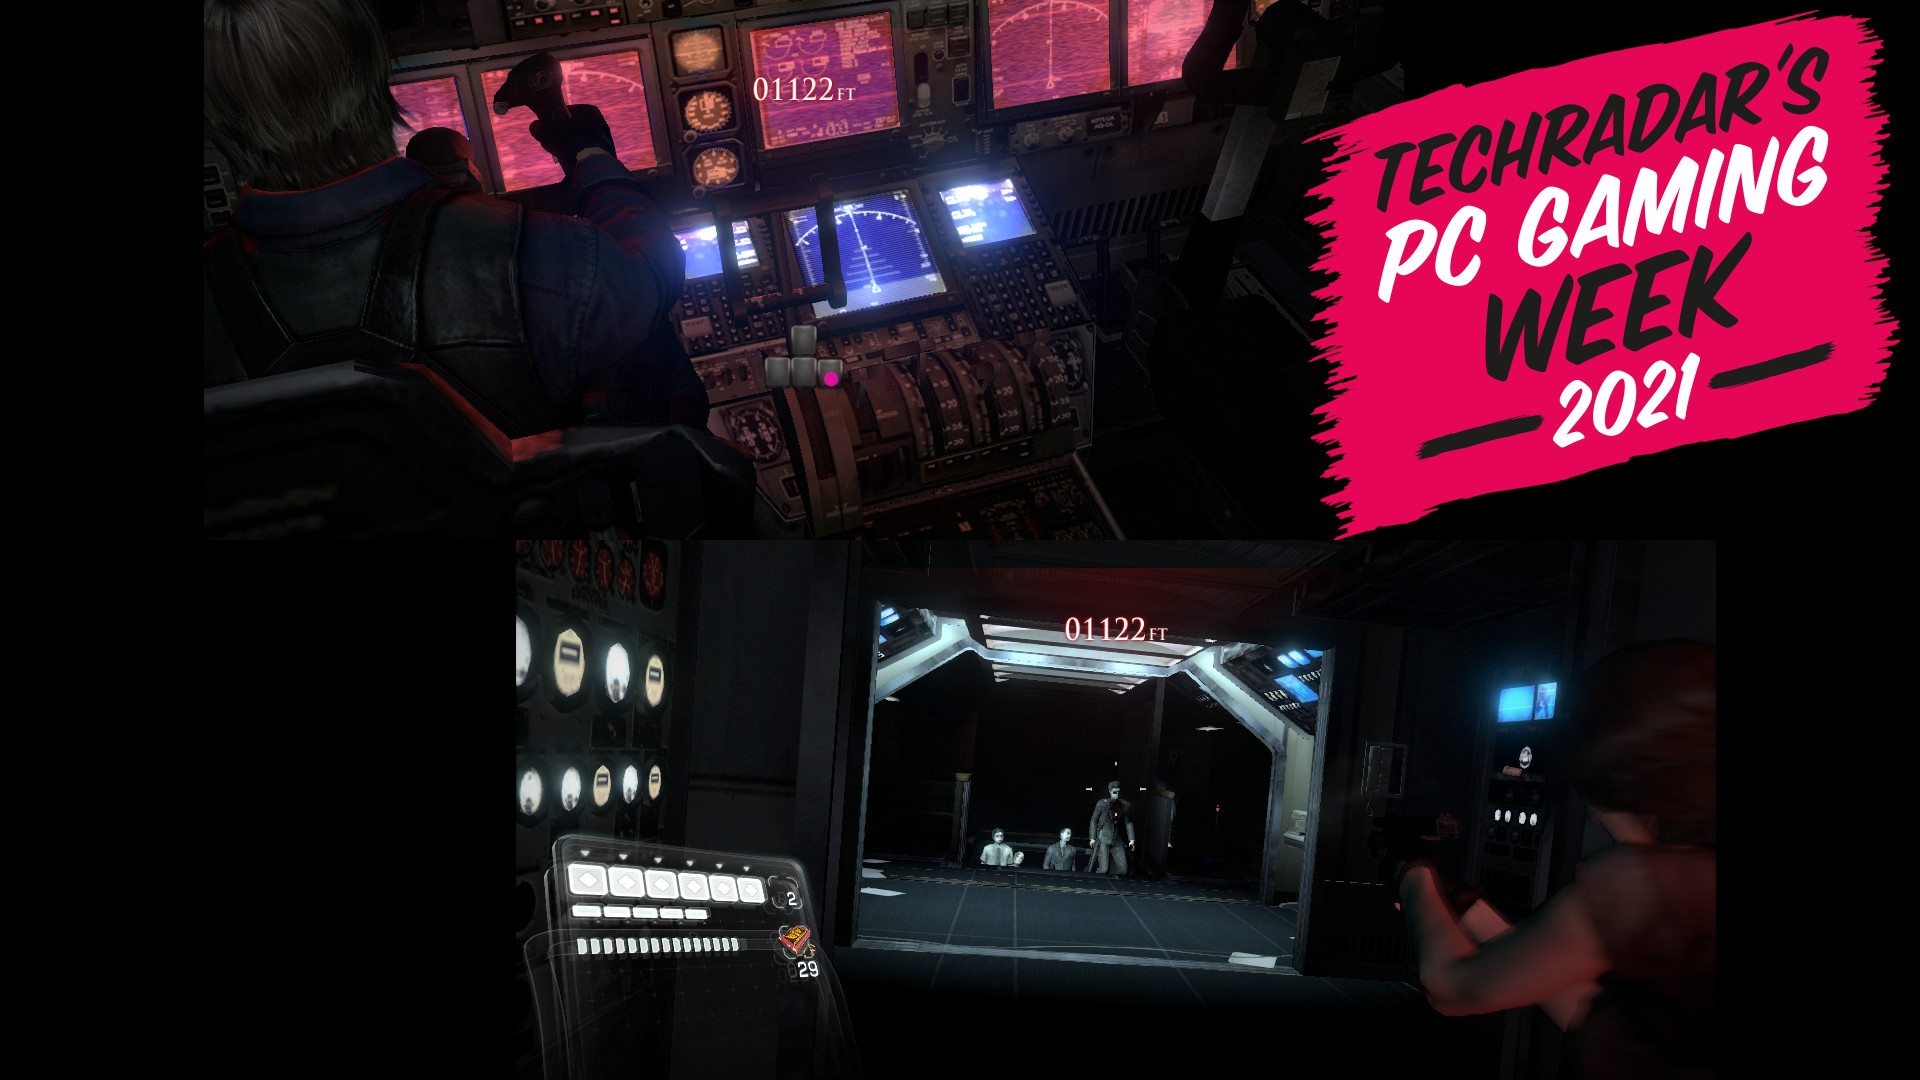 Split screen from Resident Evil 2 with PC Gaming Week logo